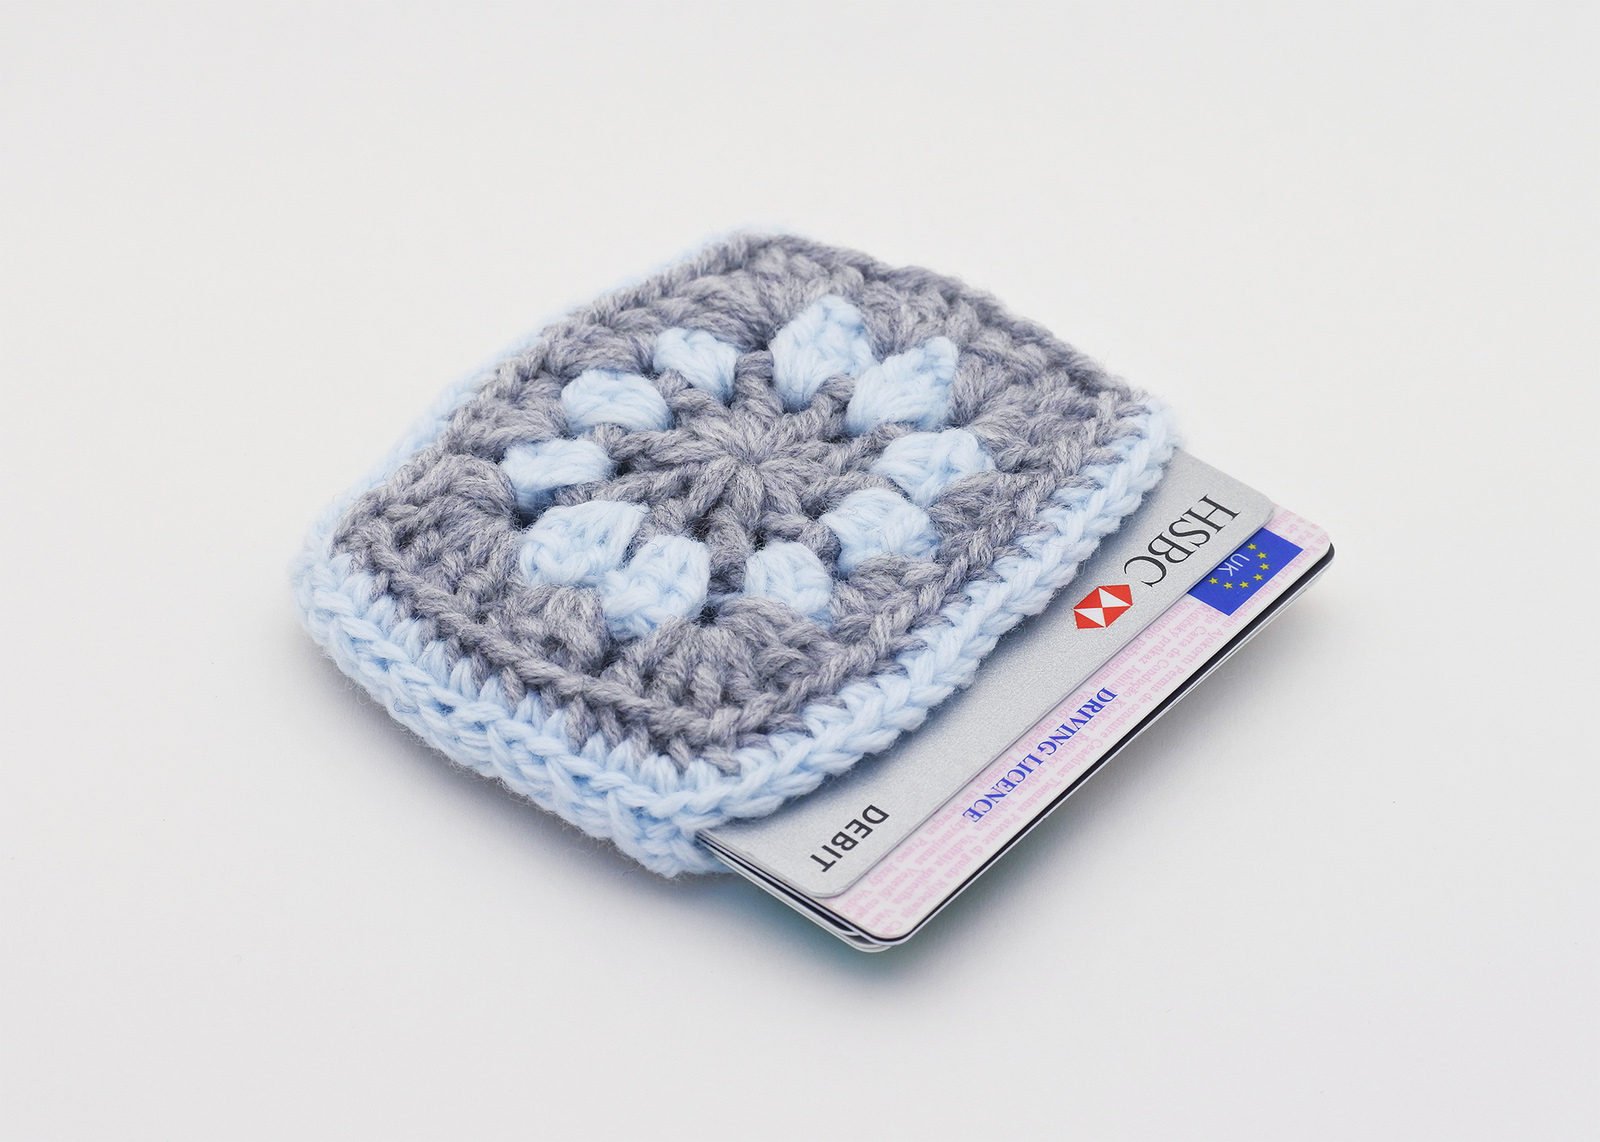 Granny Square Case for Cards – Perfect Travel Companion For Summer Excursions!